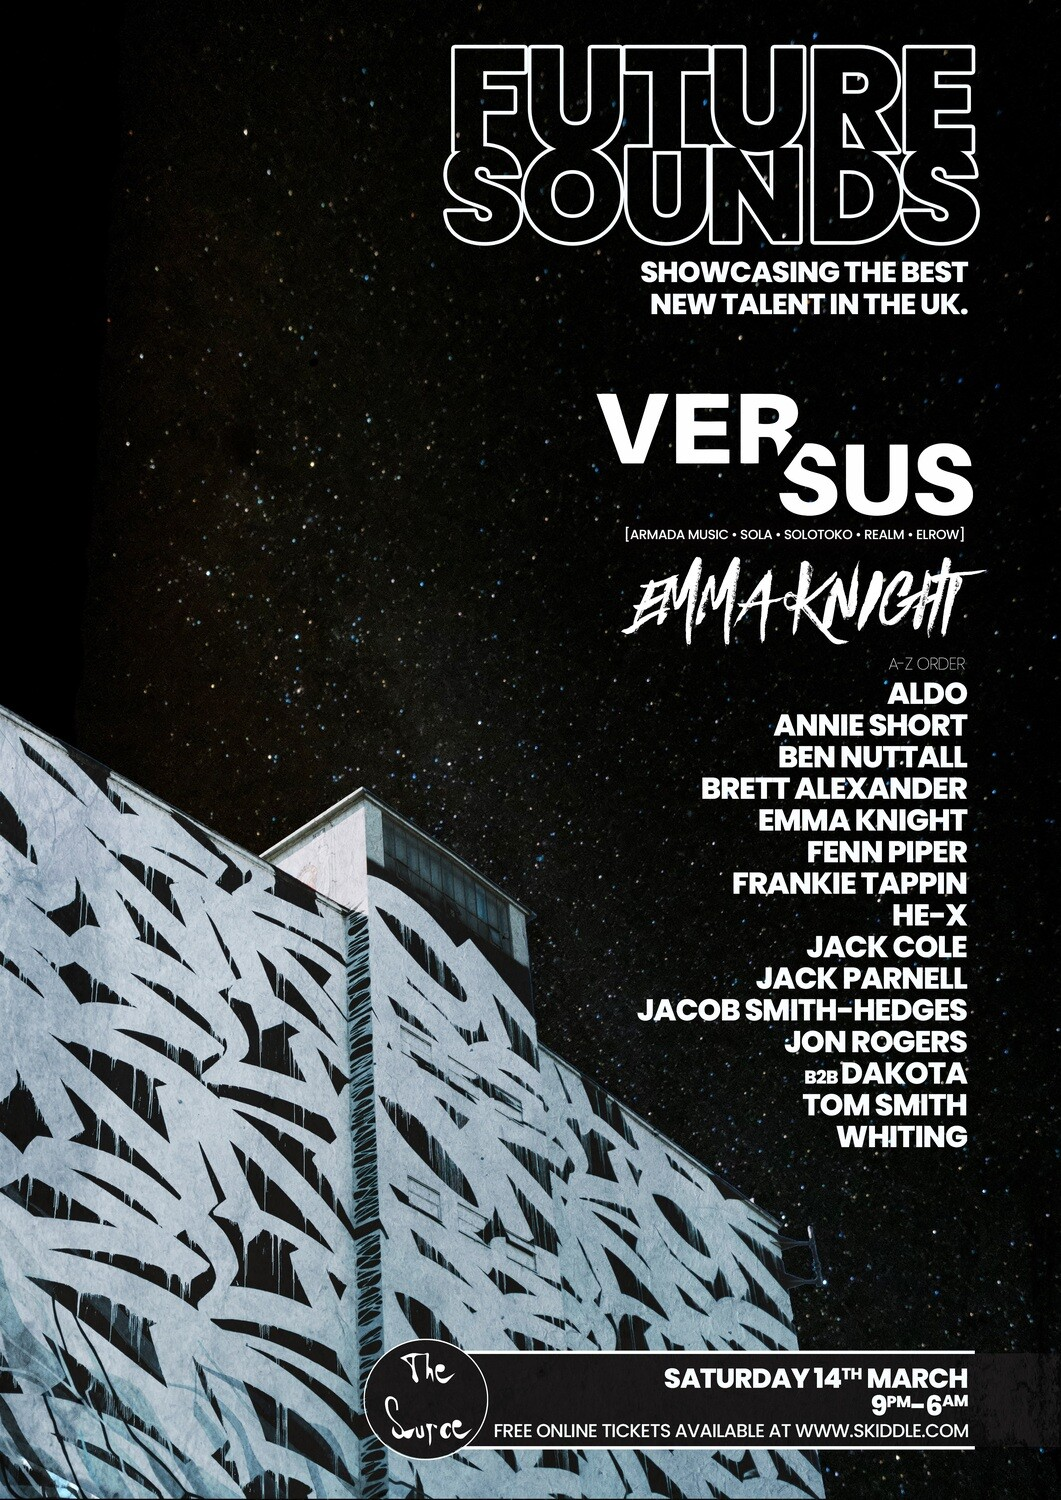 Saturday 14th March 2020 - Future Sounds FREE PARTY